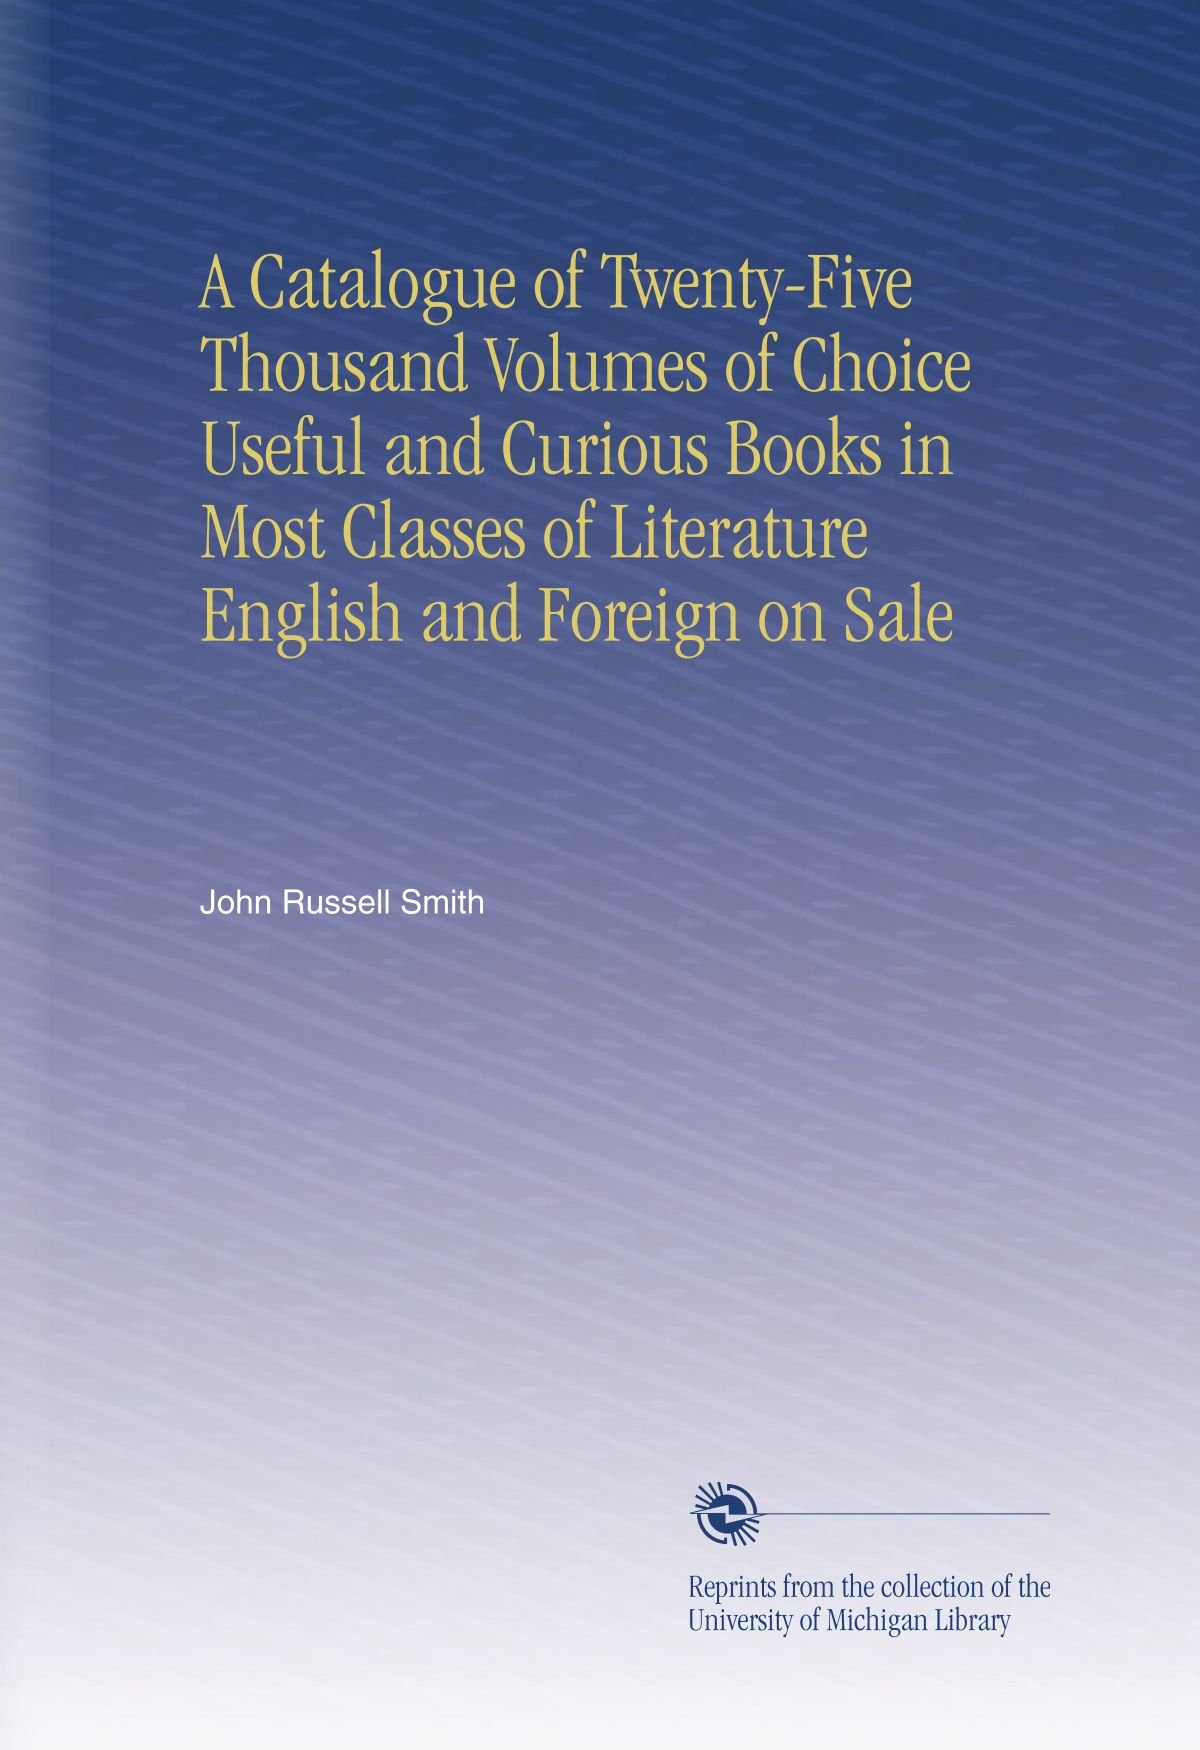 A Catalogue of Twenty-Five Thousand Volumes of Choice Useful and Curious Books in Most Classes of Literature English and Foreign on Sale PDF